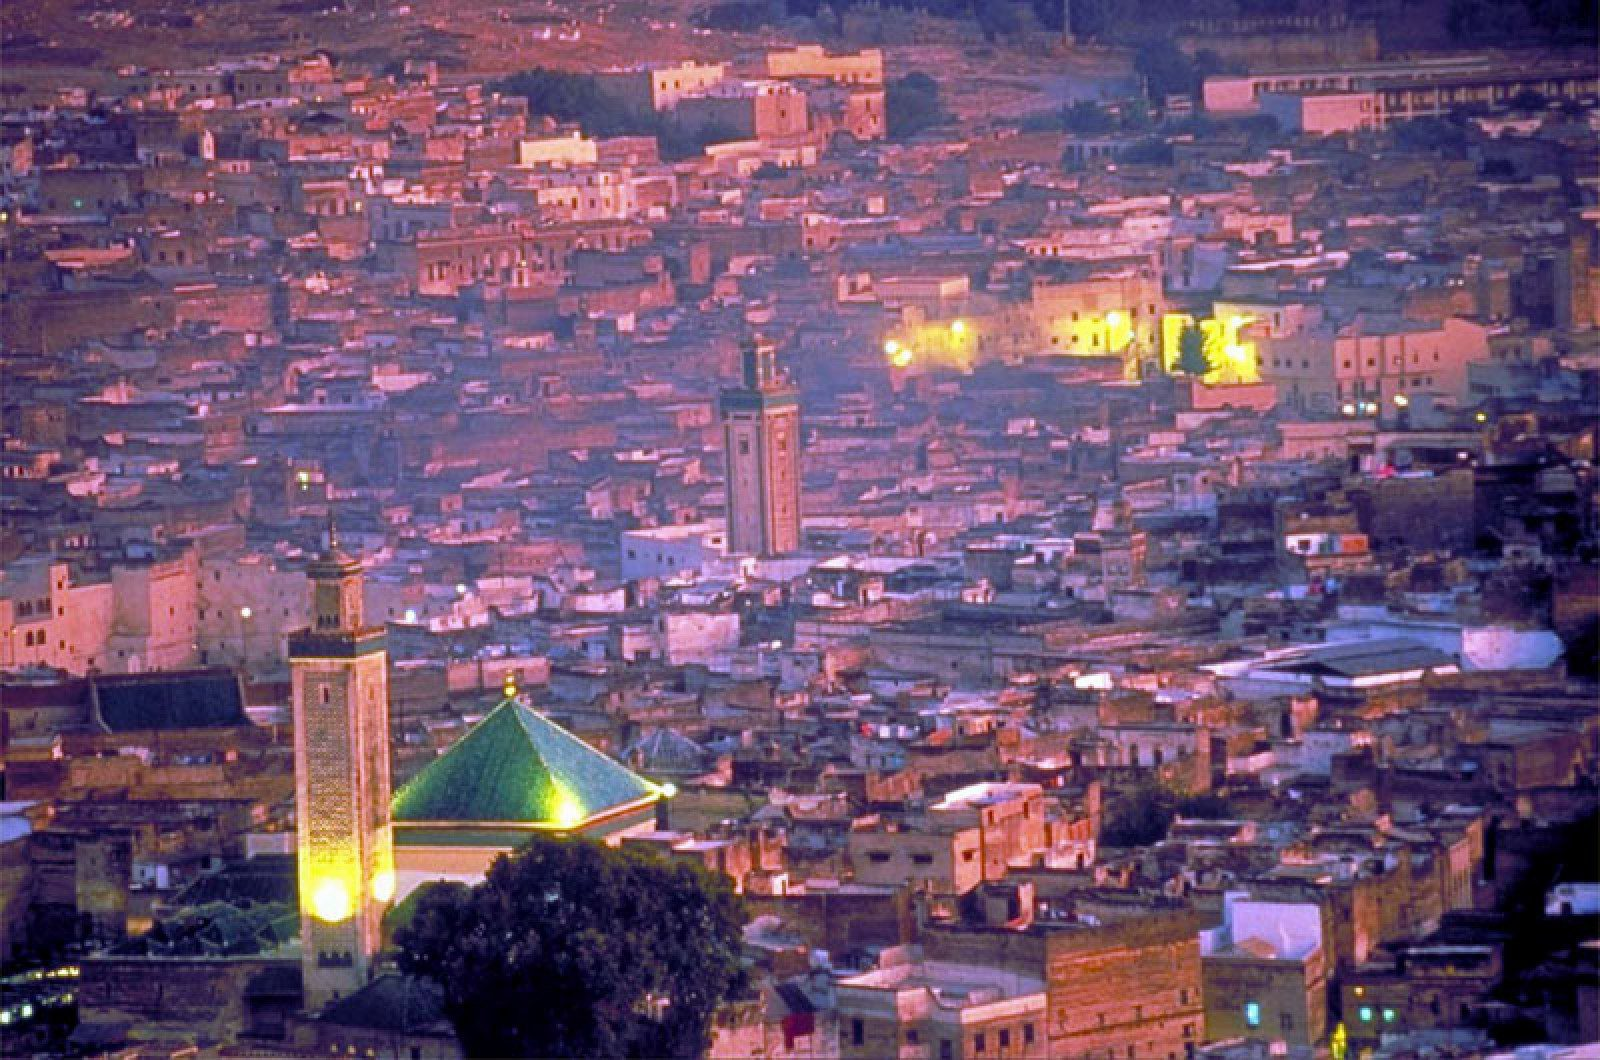 Visit Morocco's City of Fez at night